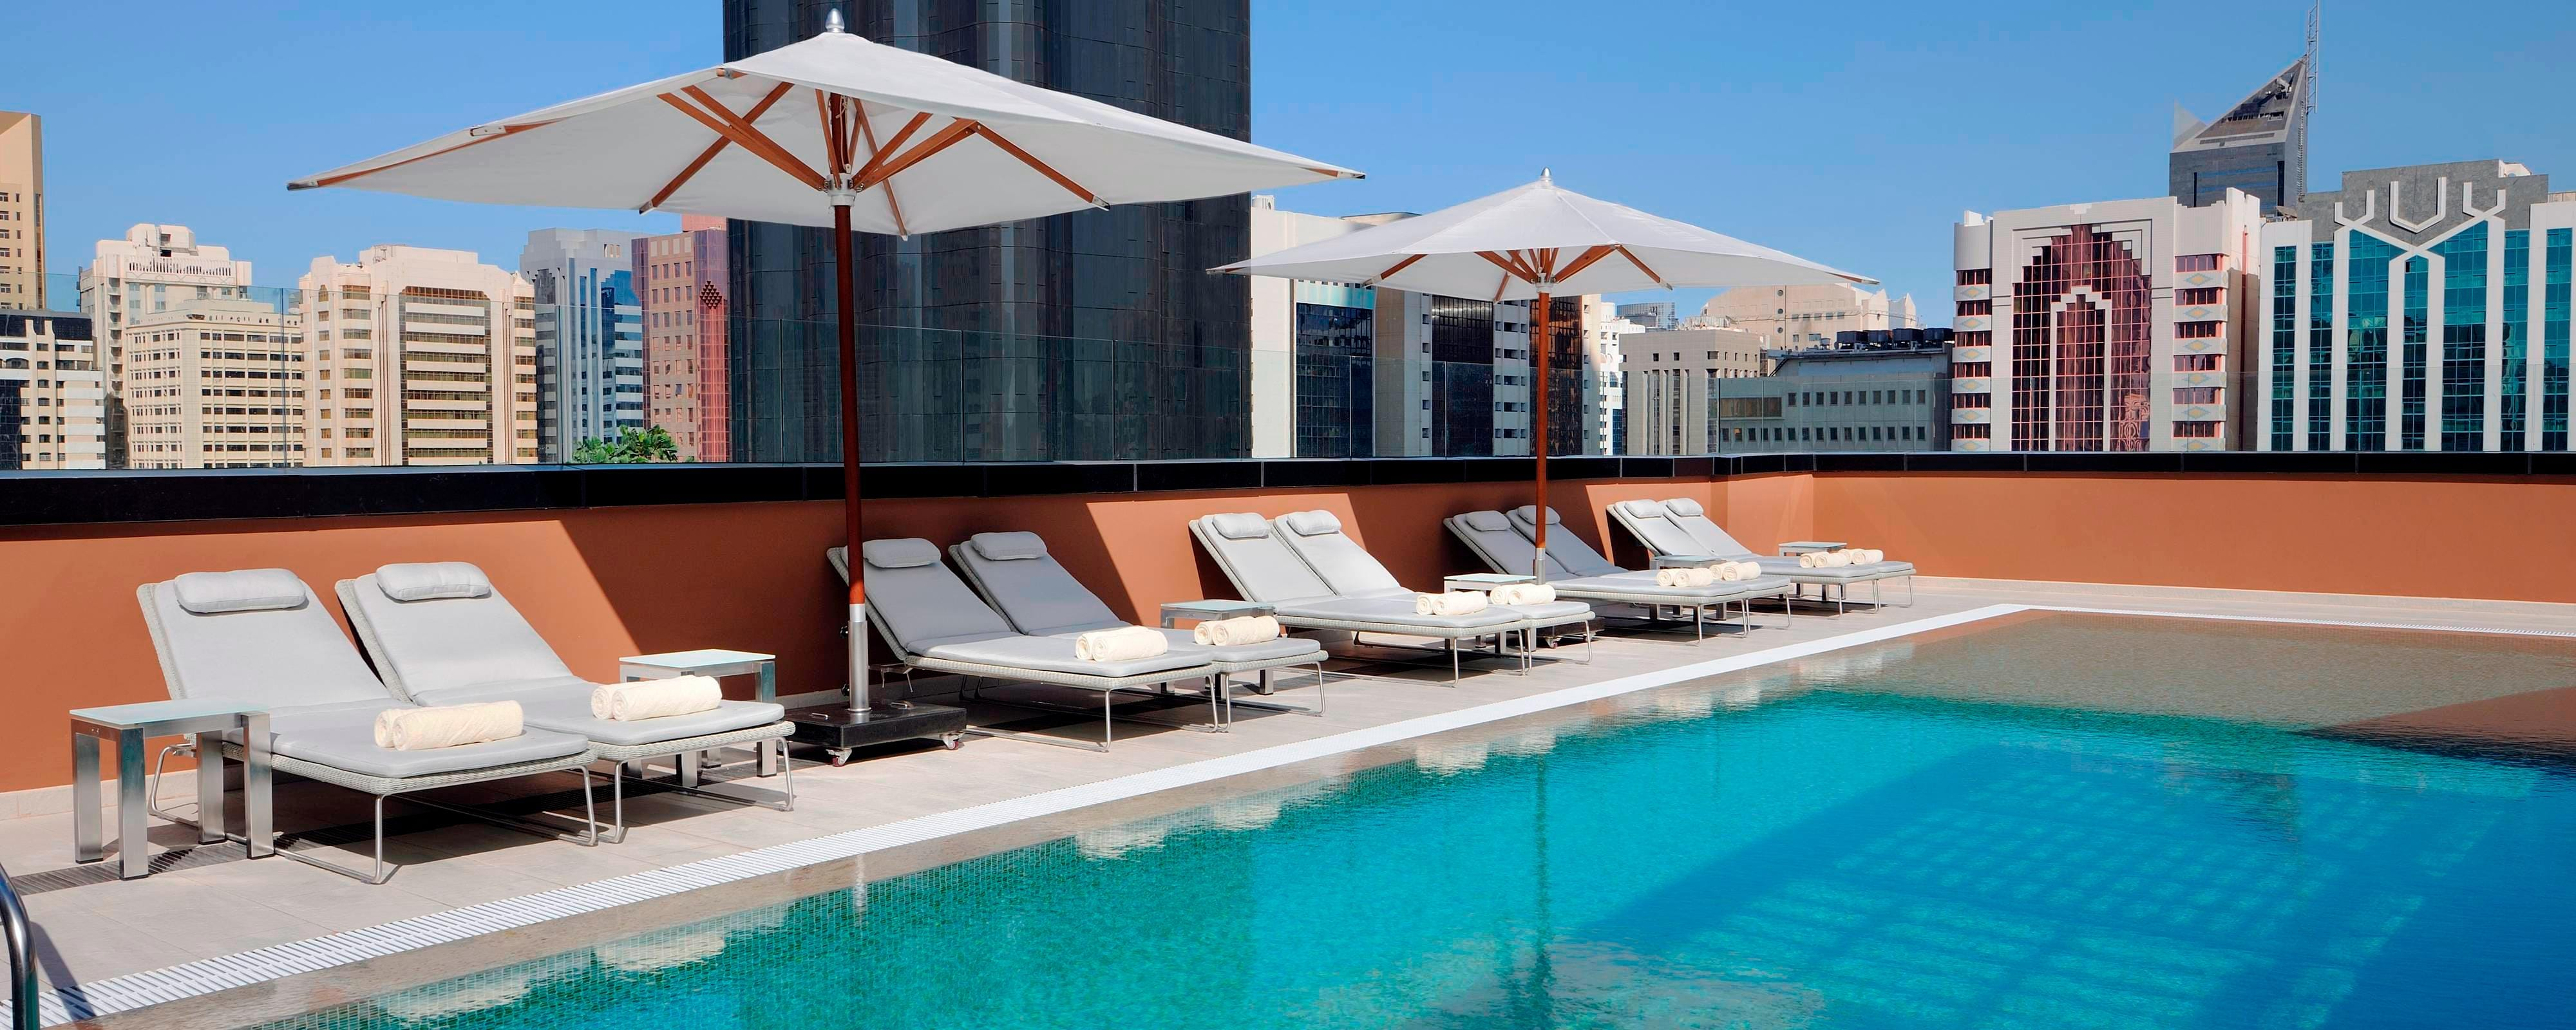 outdoor pool hotel abu dhabi